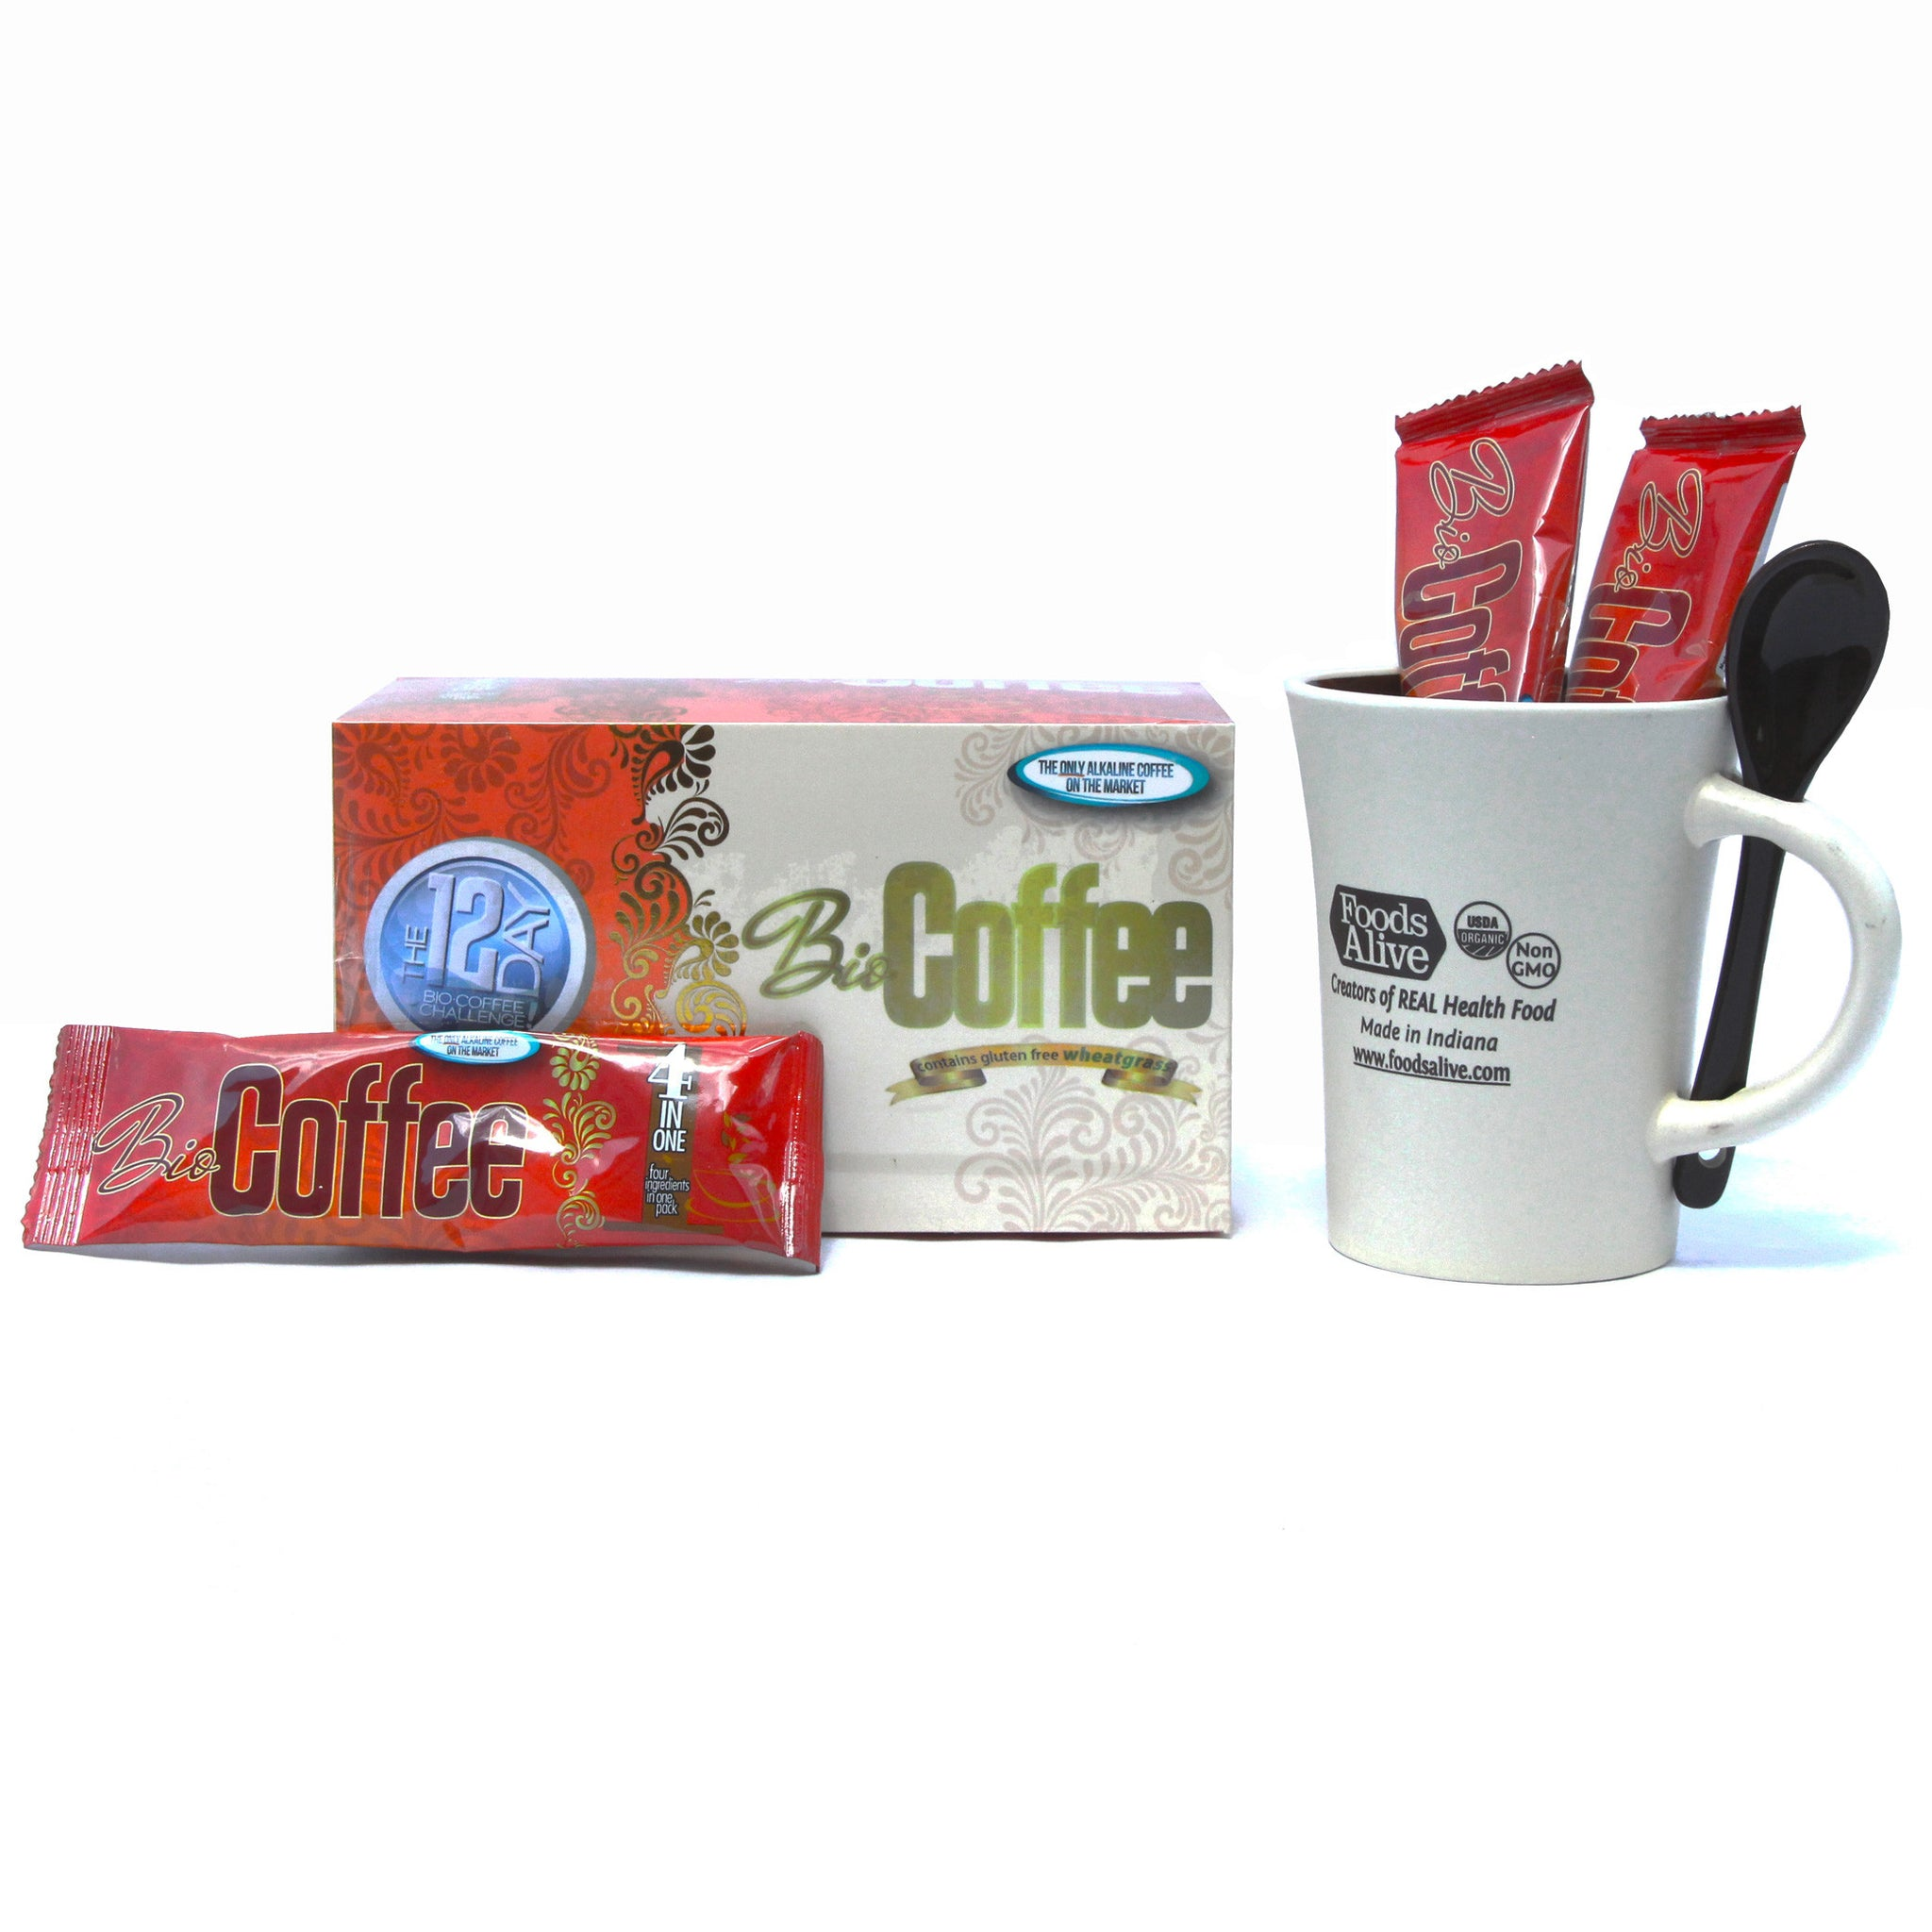 Bio Coffee - Alkalizing Coffee - Foods Alive